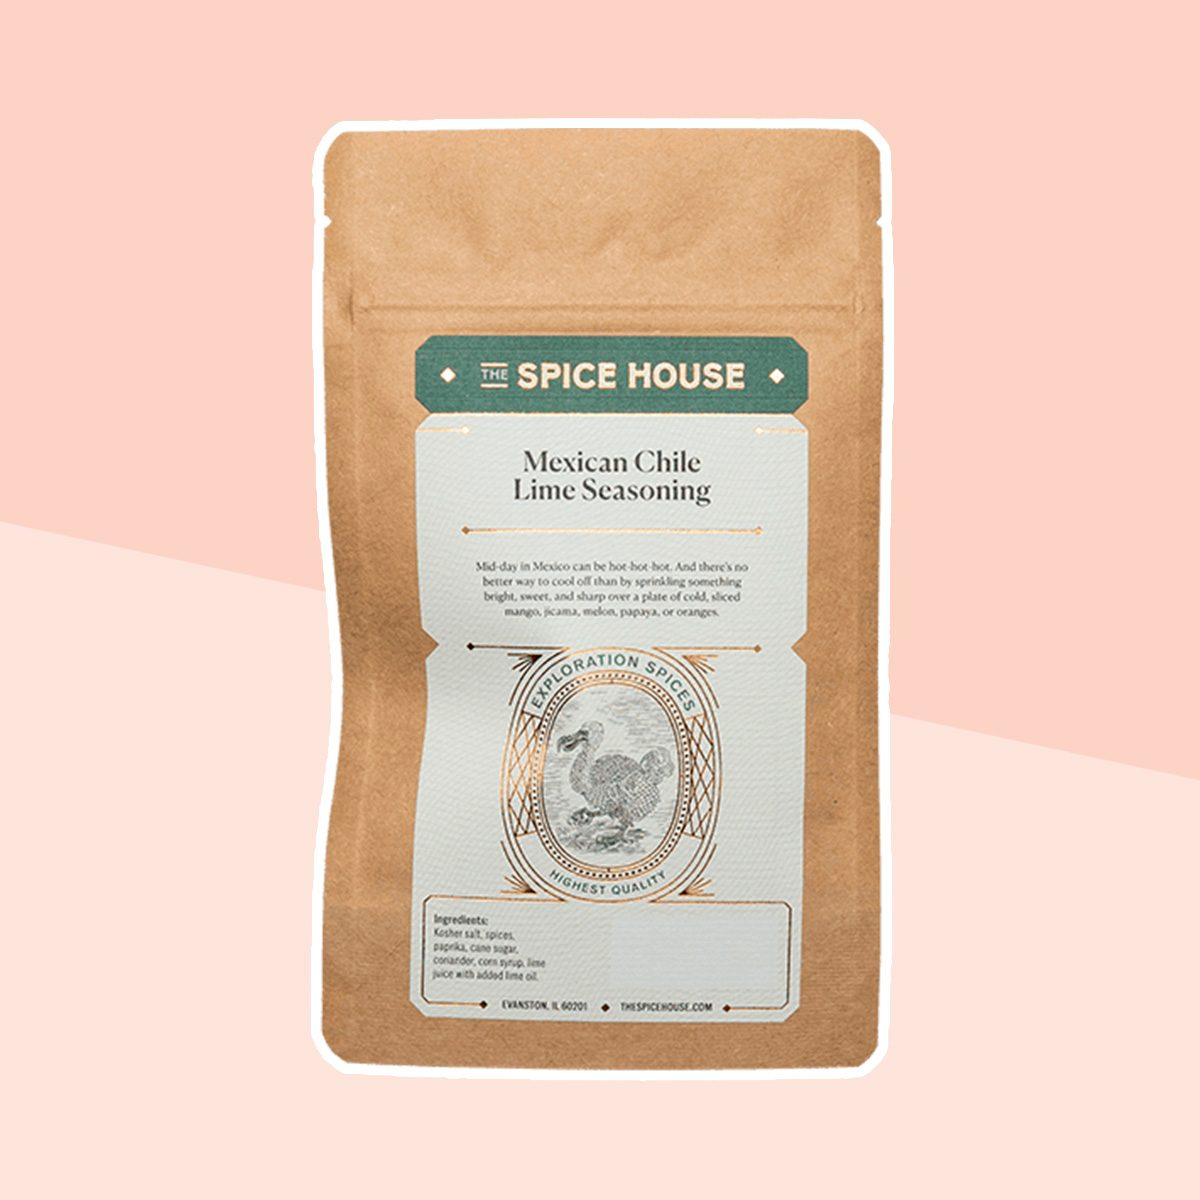 Mexican Chile Lime Seasoning